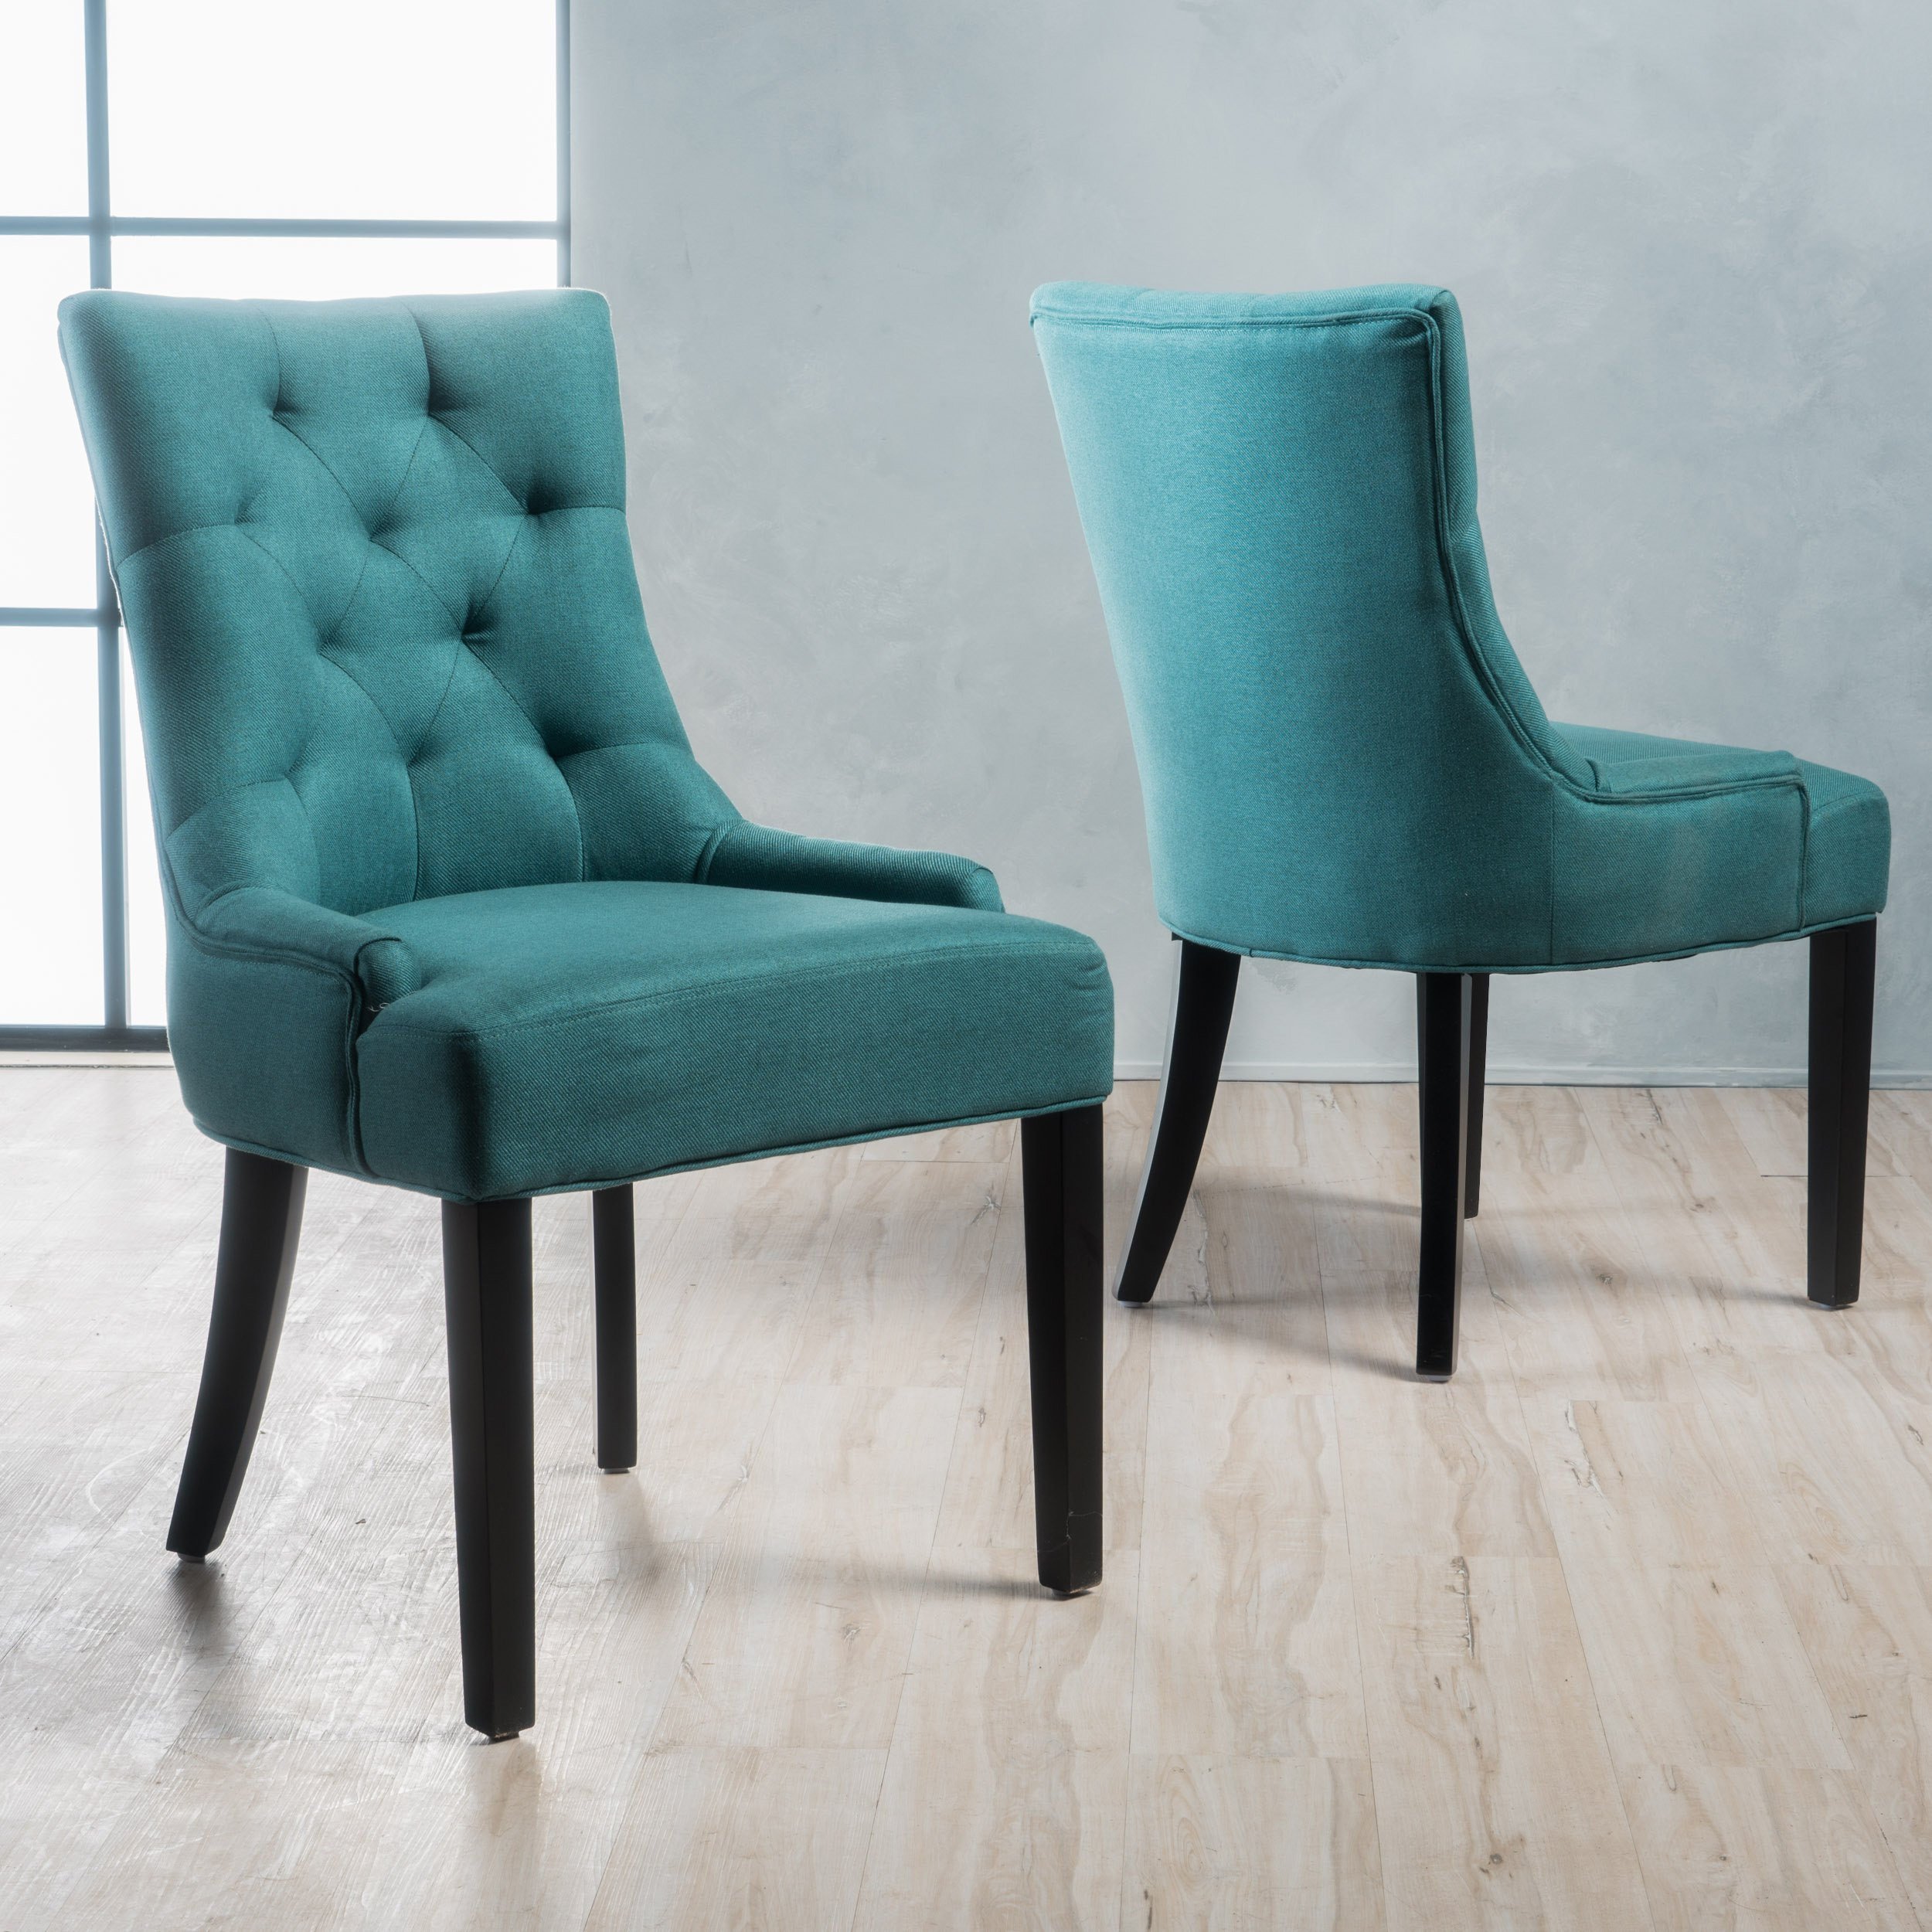 Christopher Knight Home 299537 Hayden Fabric Dining Chairs (Set of 2) Dark Teal by Christopher Knight Home (Image #2)